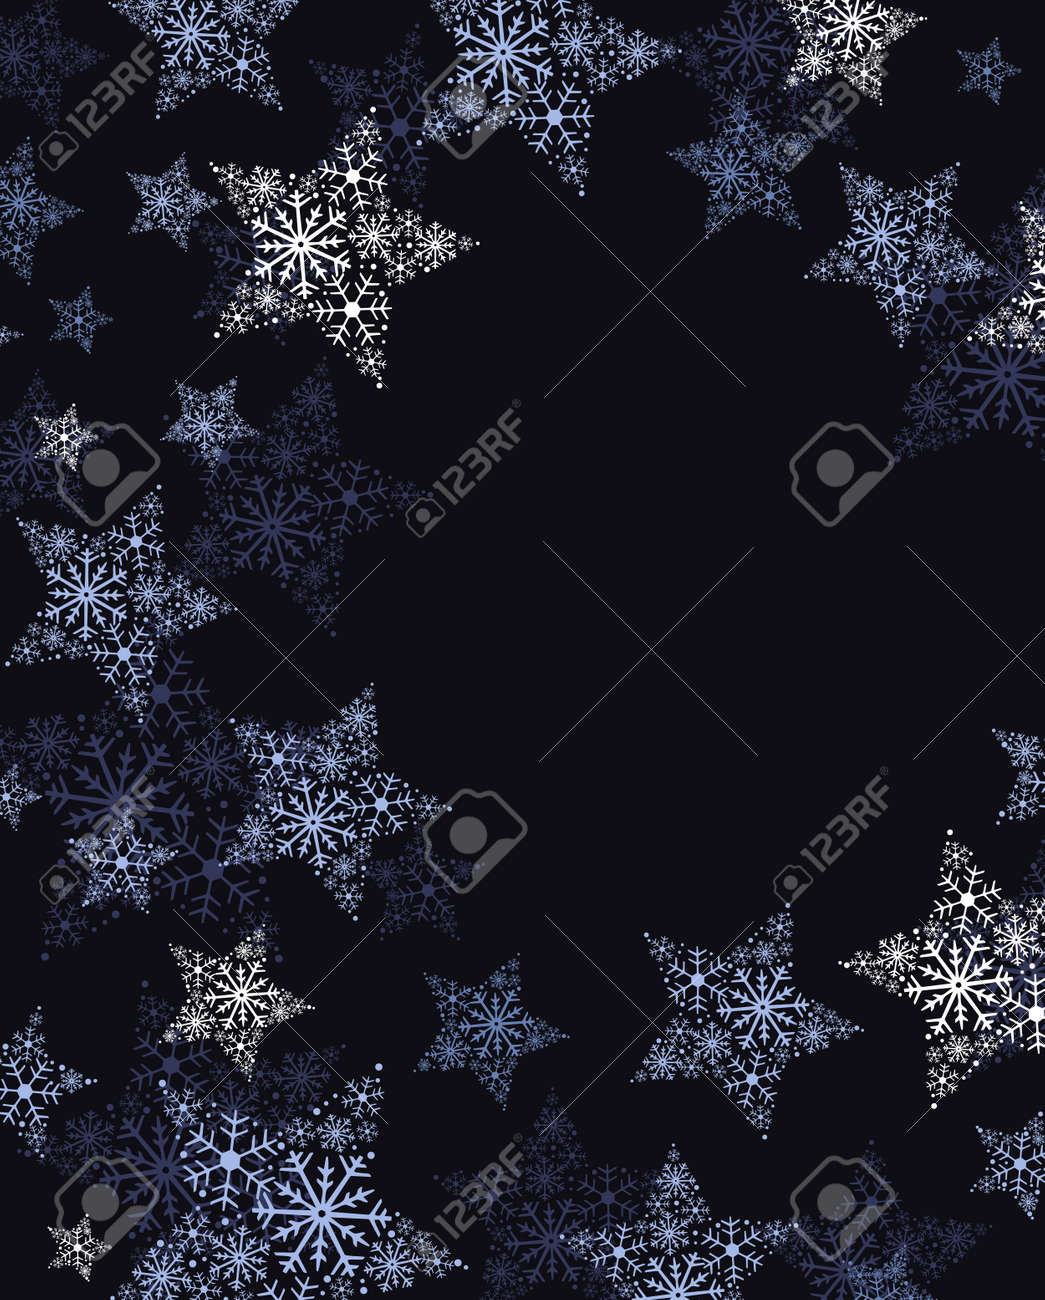 Vector illustration of stars. Christmas background. Merry Christmas card with snowflakes. - 152322940